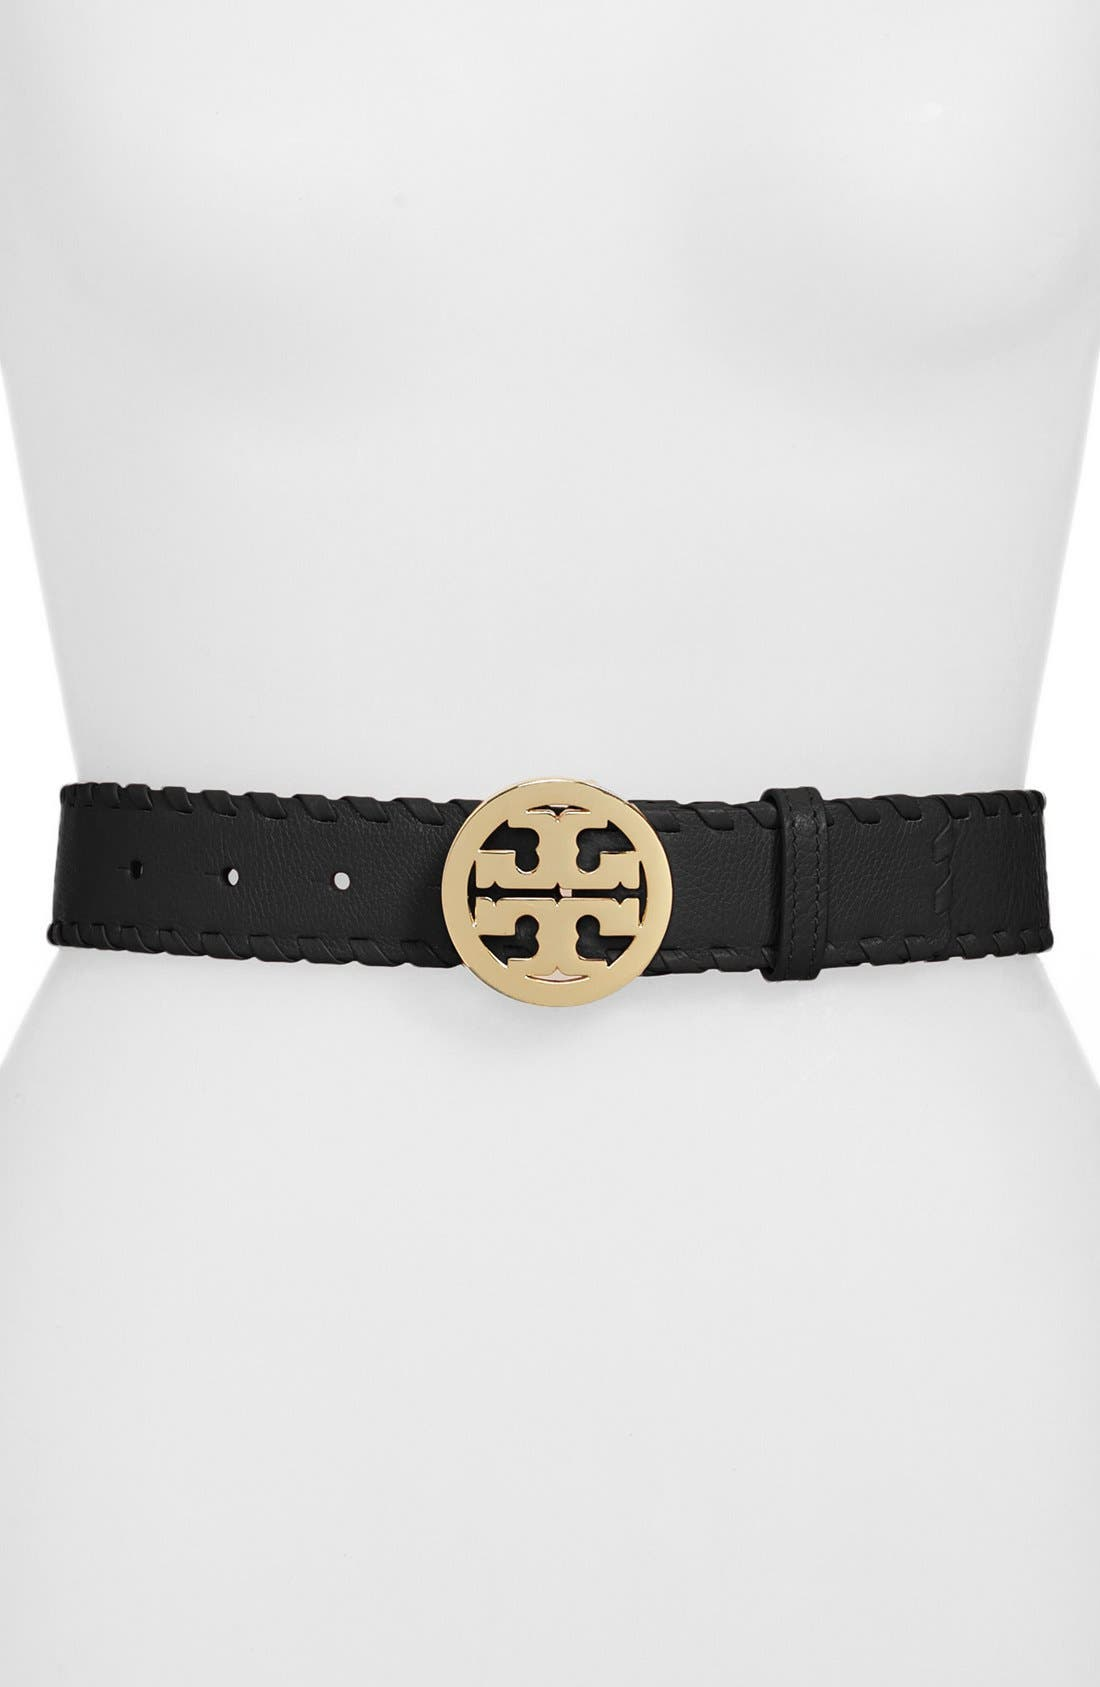 Alternate Image 1 Selected - Tory Burch 'Marion' Whipstitch Logo Belt